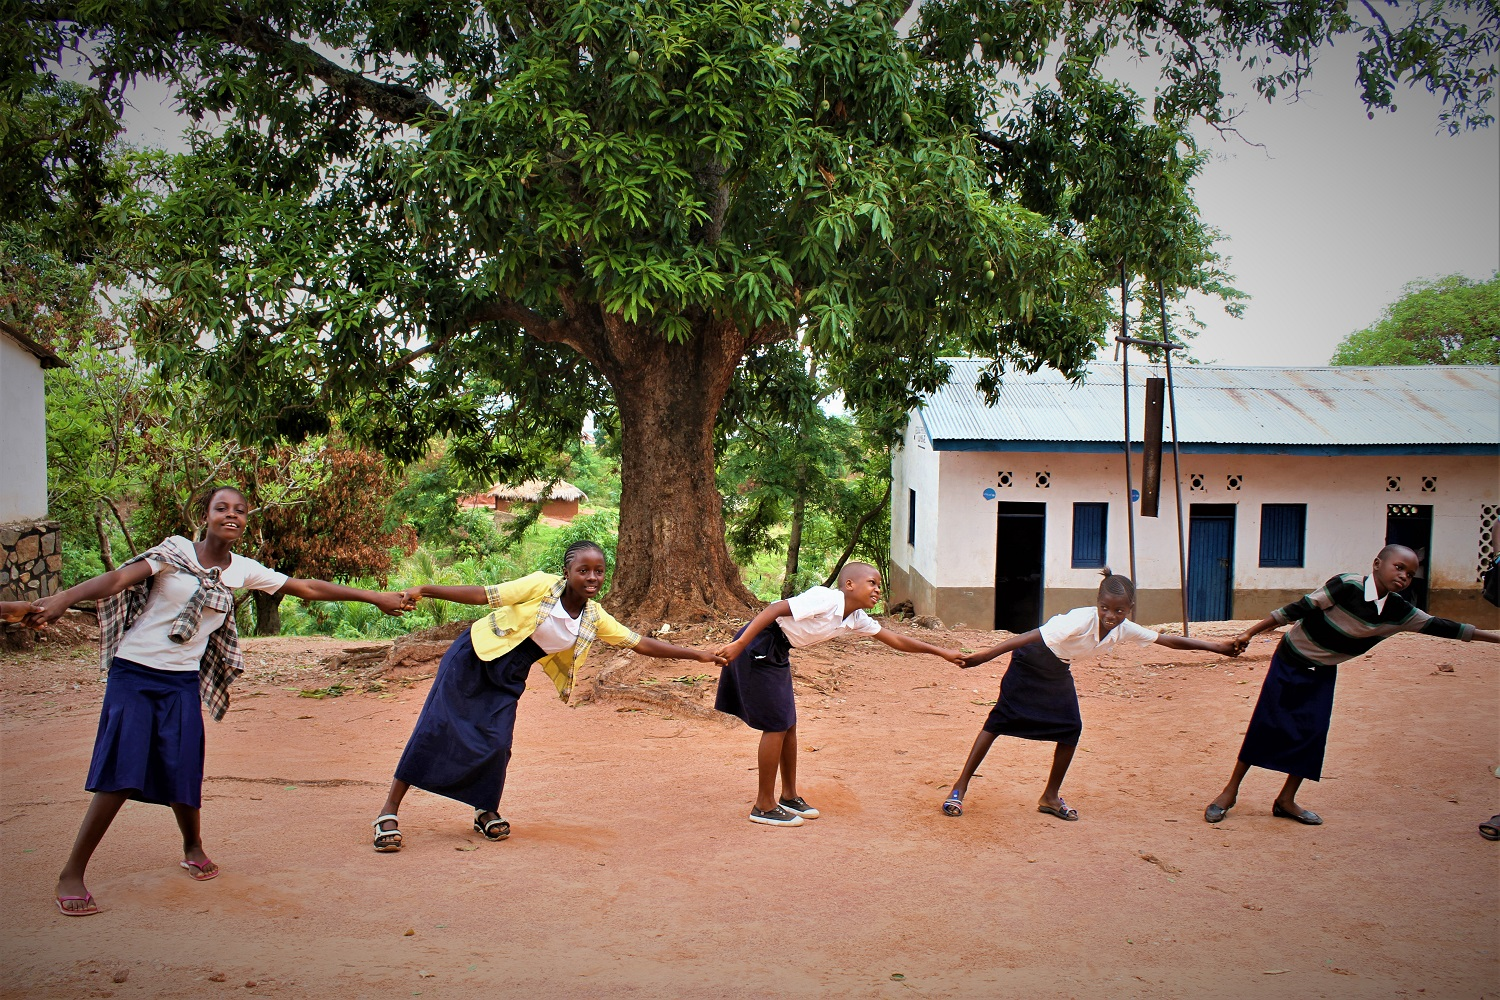 A group of children in school uniform form a human chain in a school yard.